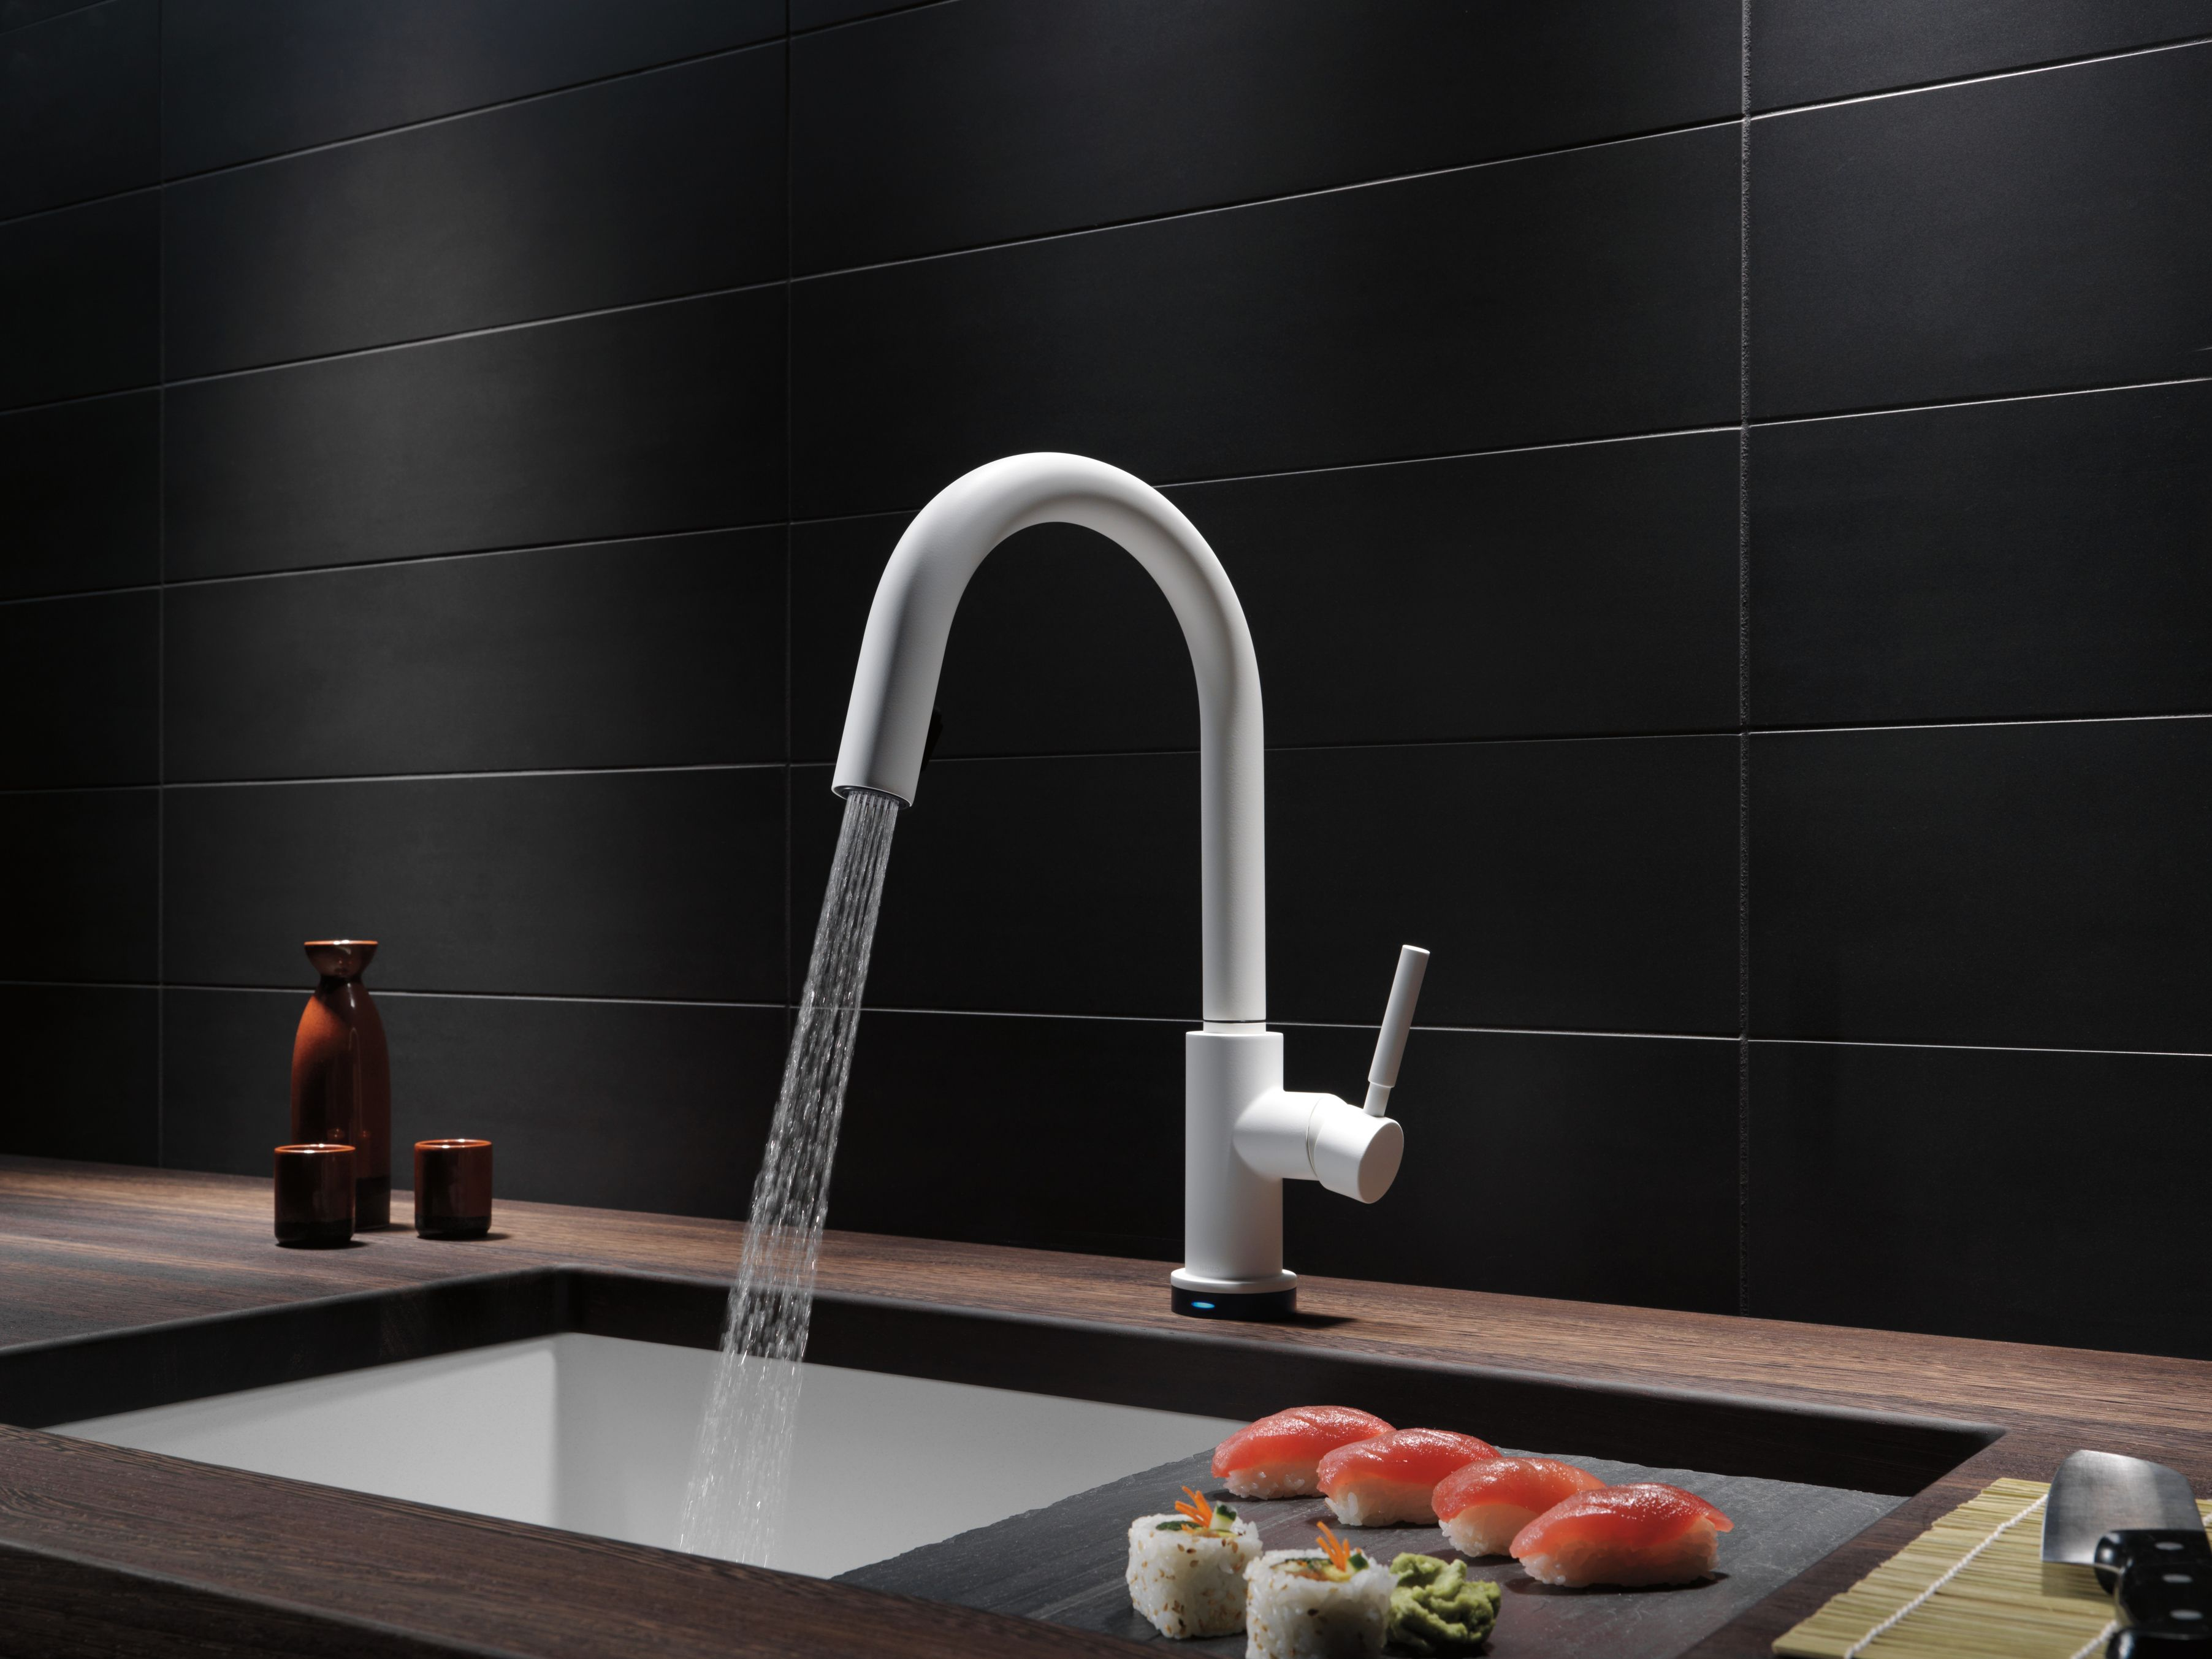 The Solna faucet by Brizo in a Matte White finish stands as an ...